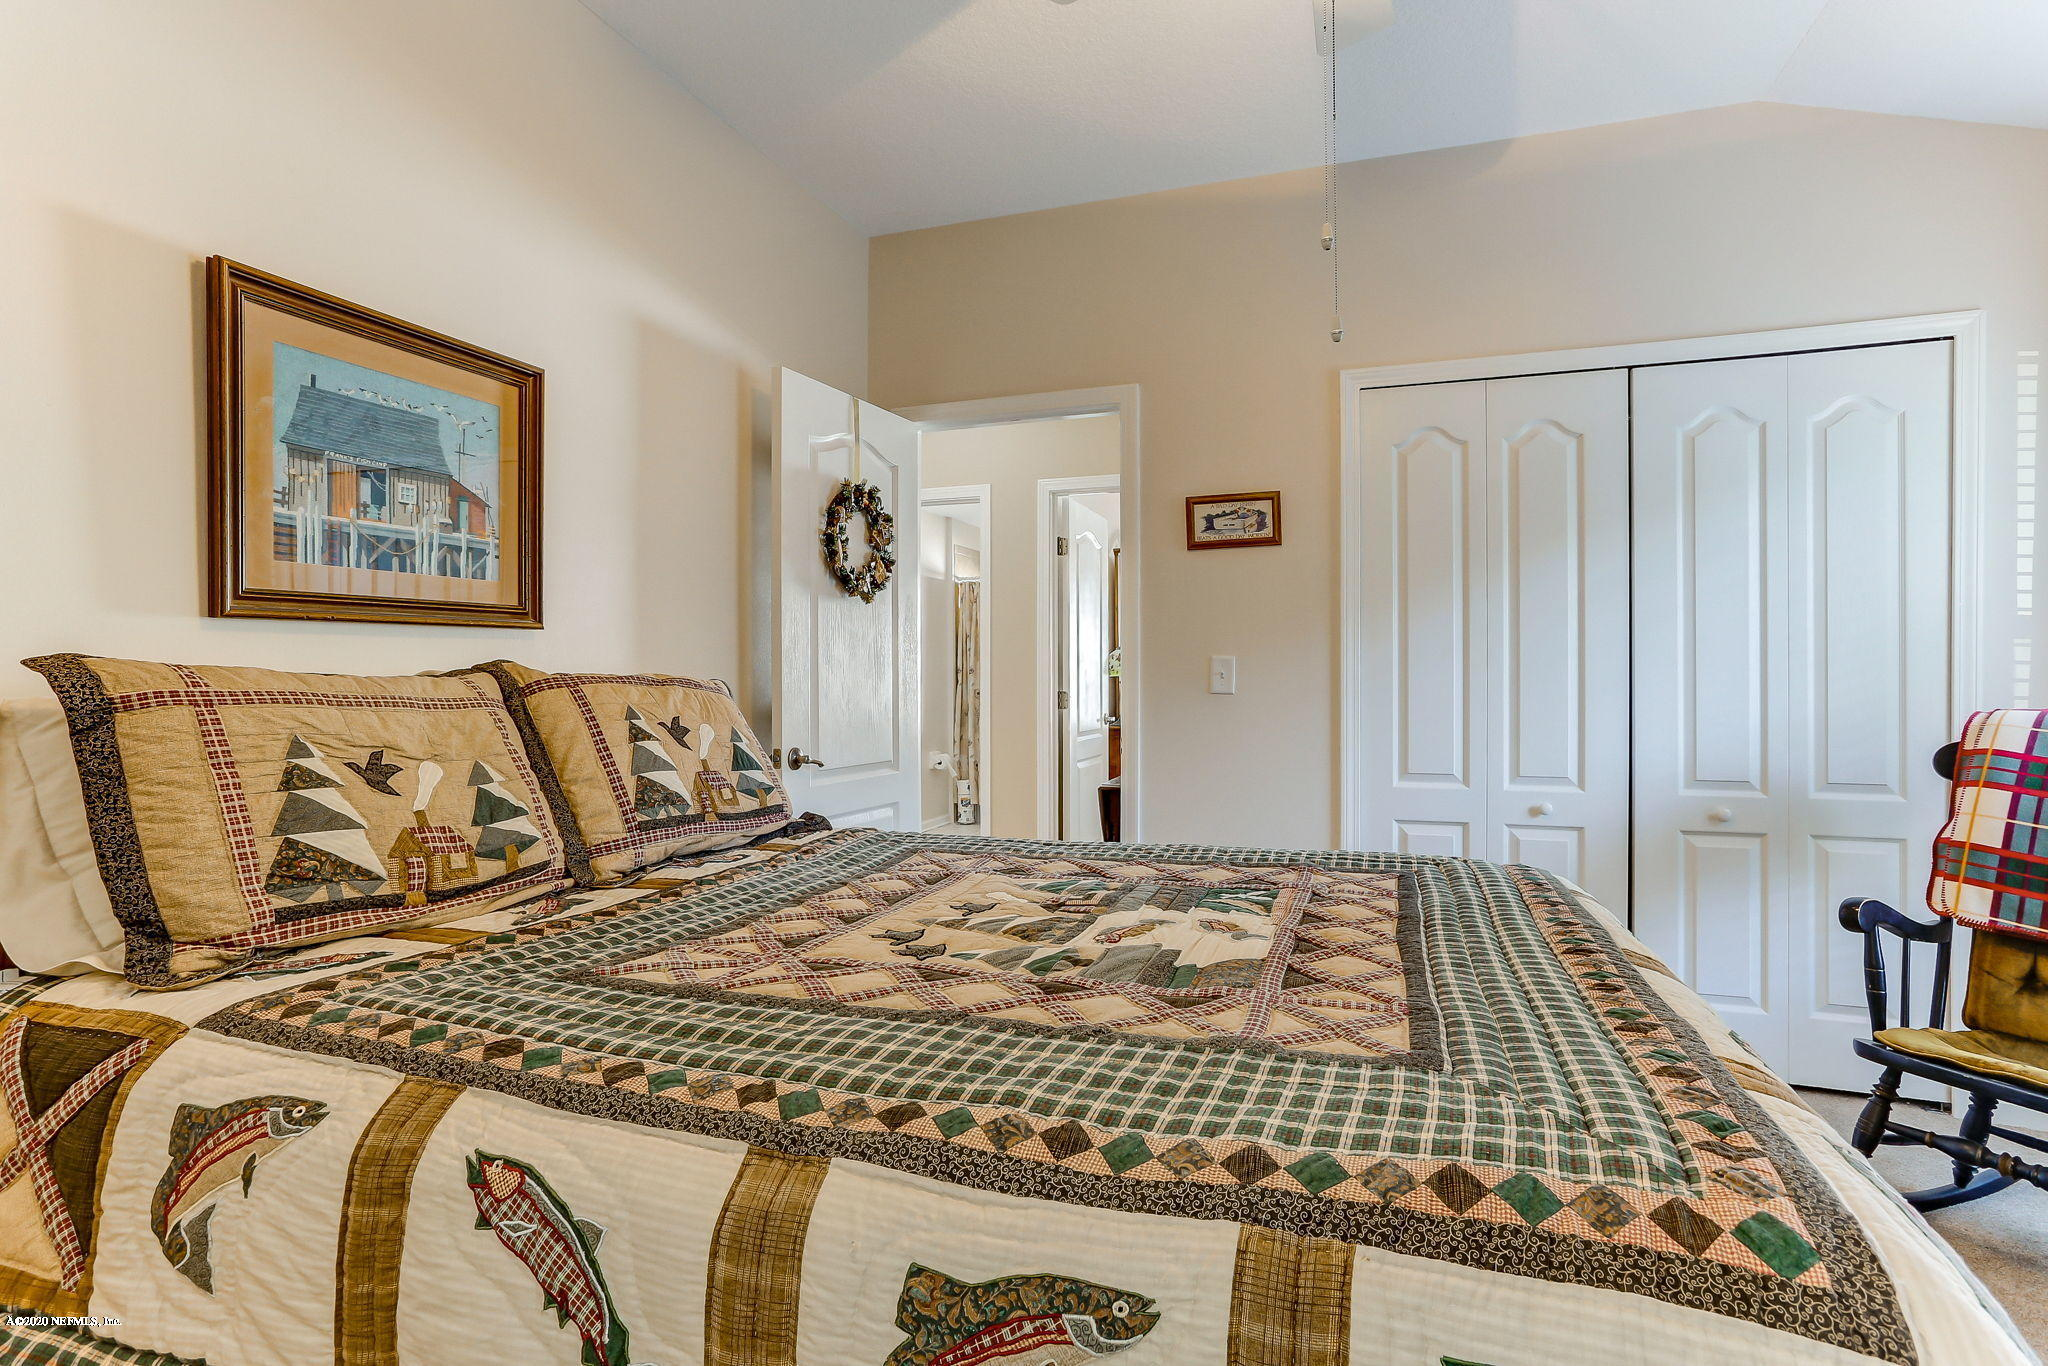 86217 SAND HICKORY, YULEE, FLORIDA 32097, 5 Bedrooms Bedrooms, ,4 BathroomsBathrooms,Residential,For sale,SAND HICKORY,1042517